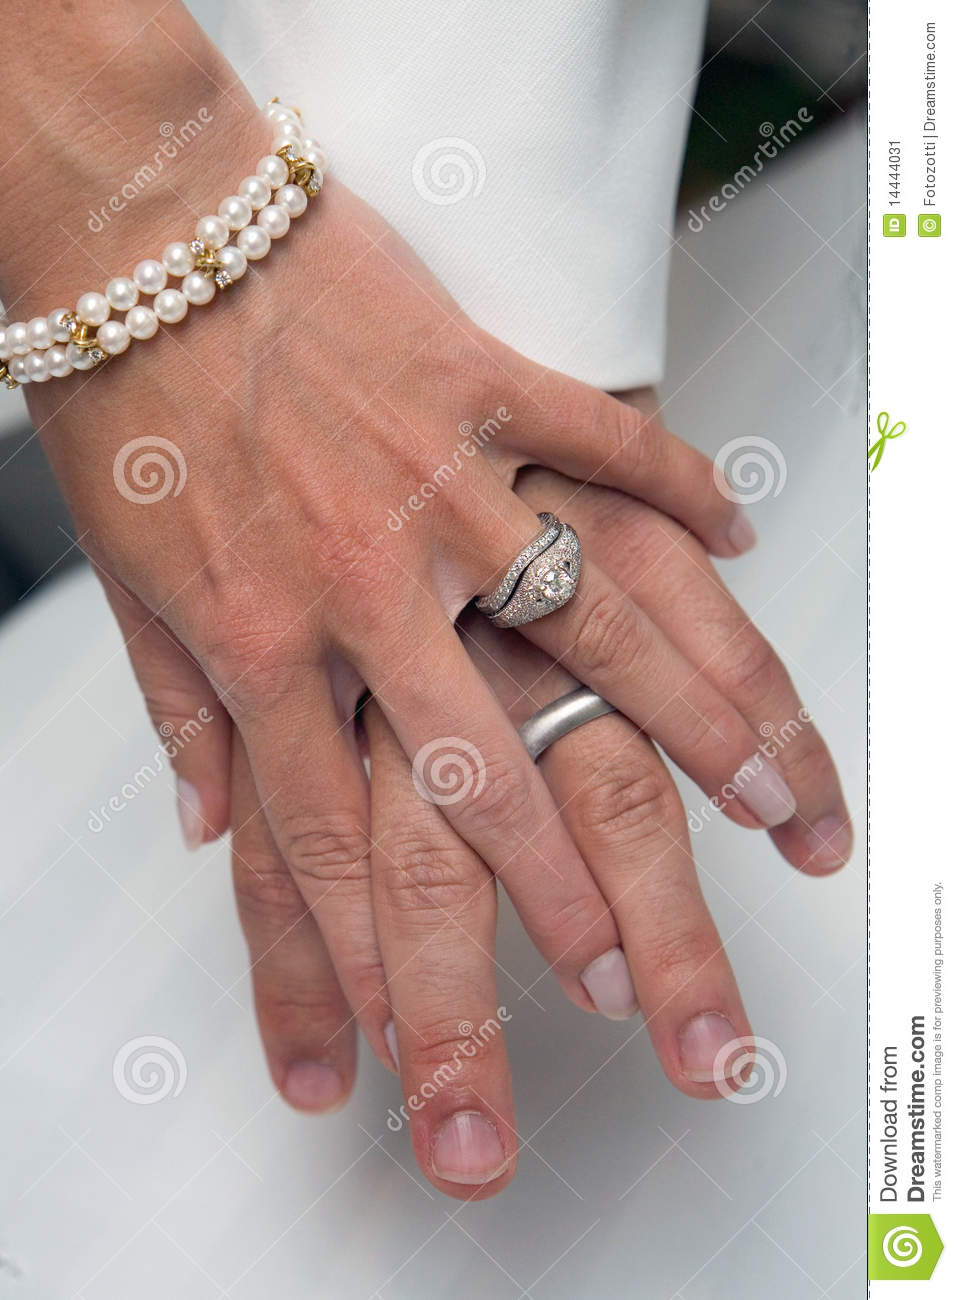 Wedding Rings Holding Hands Stock Image Image 14444031